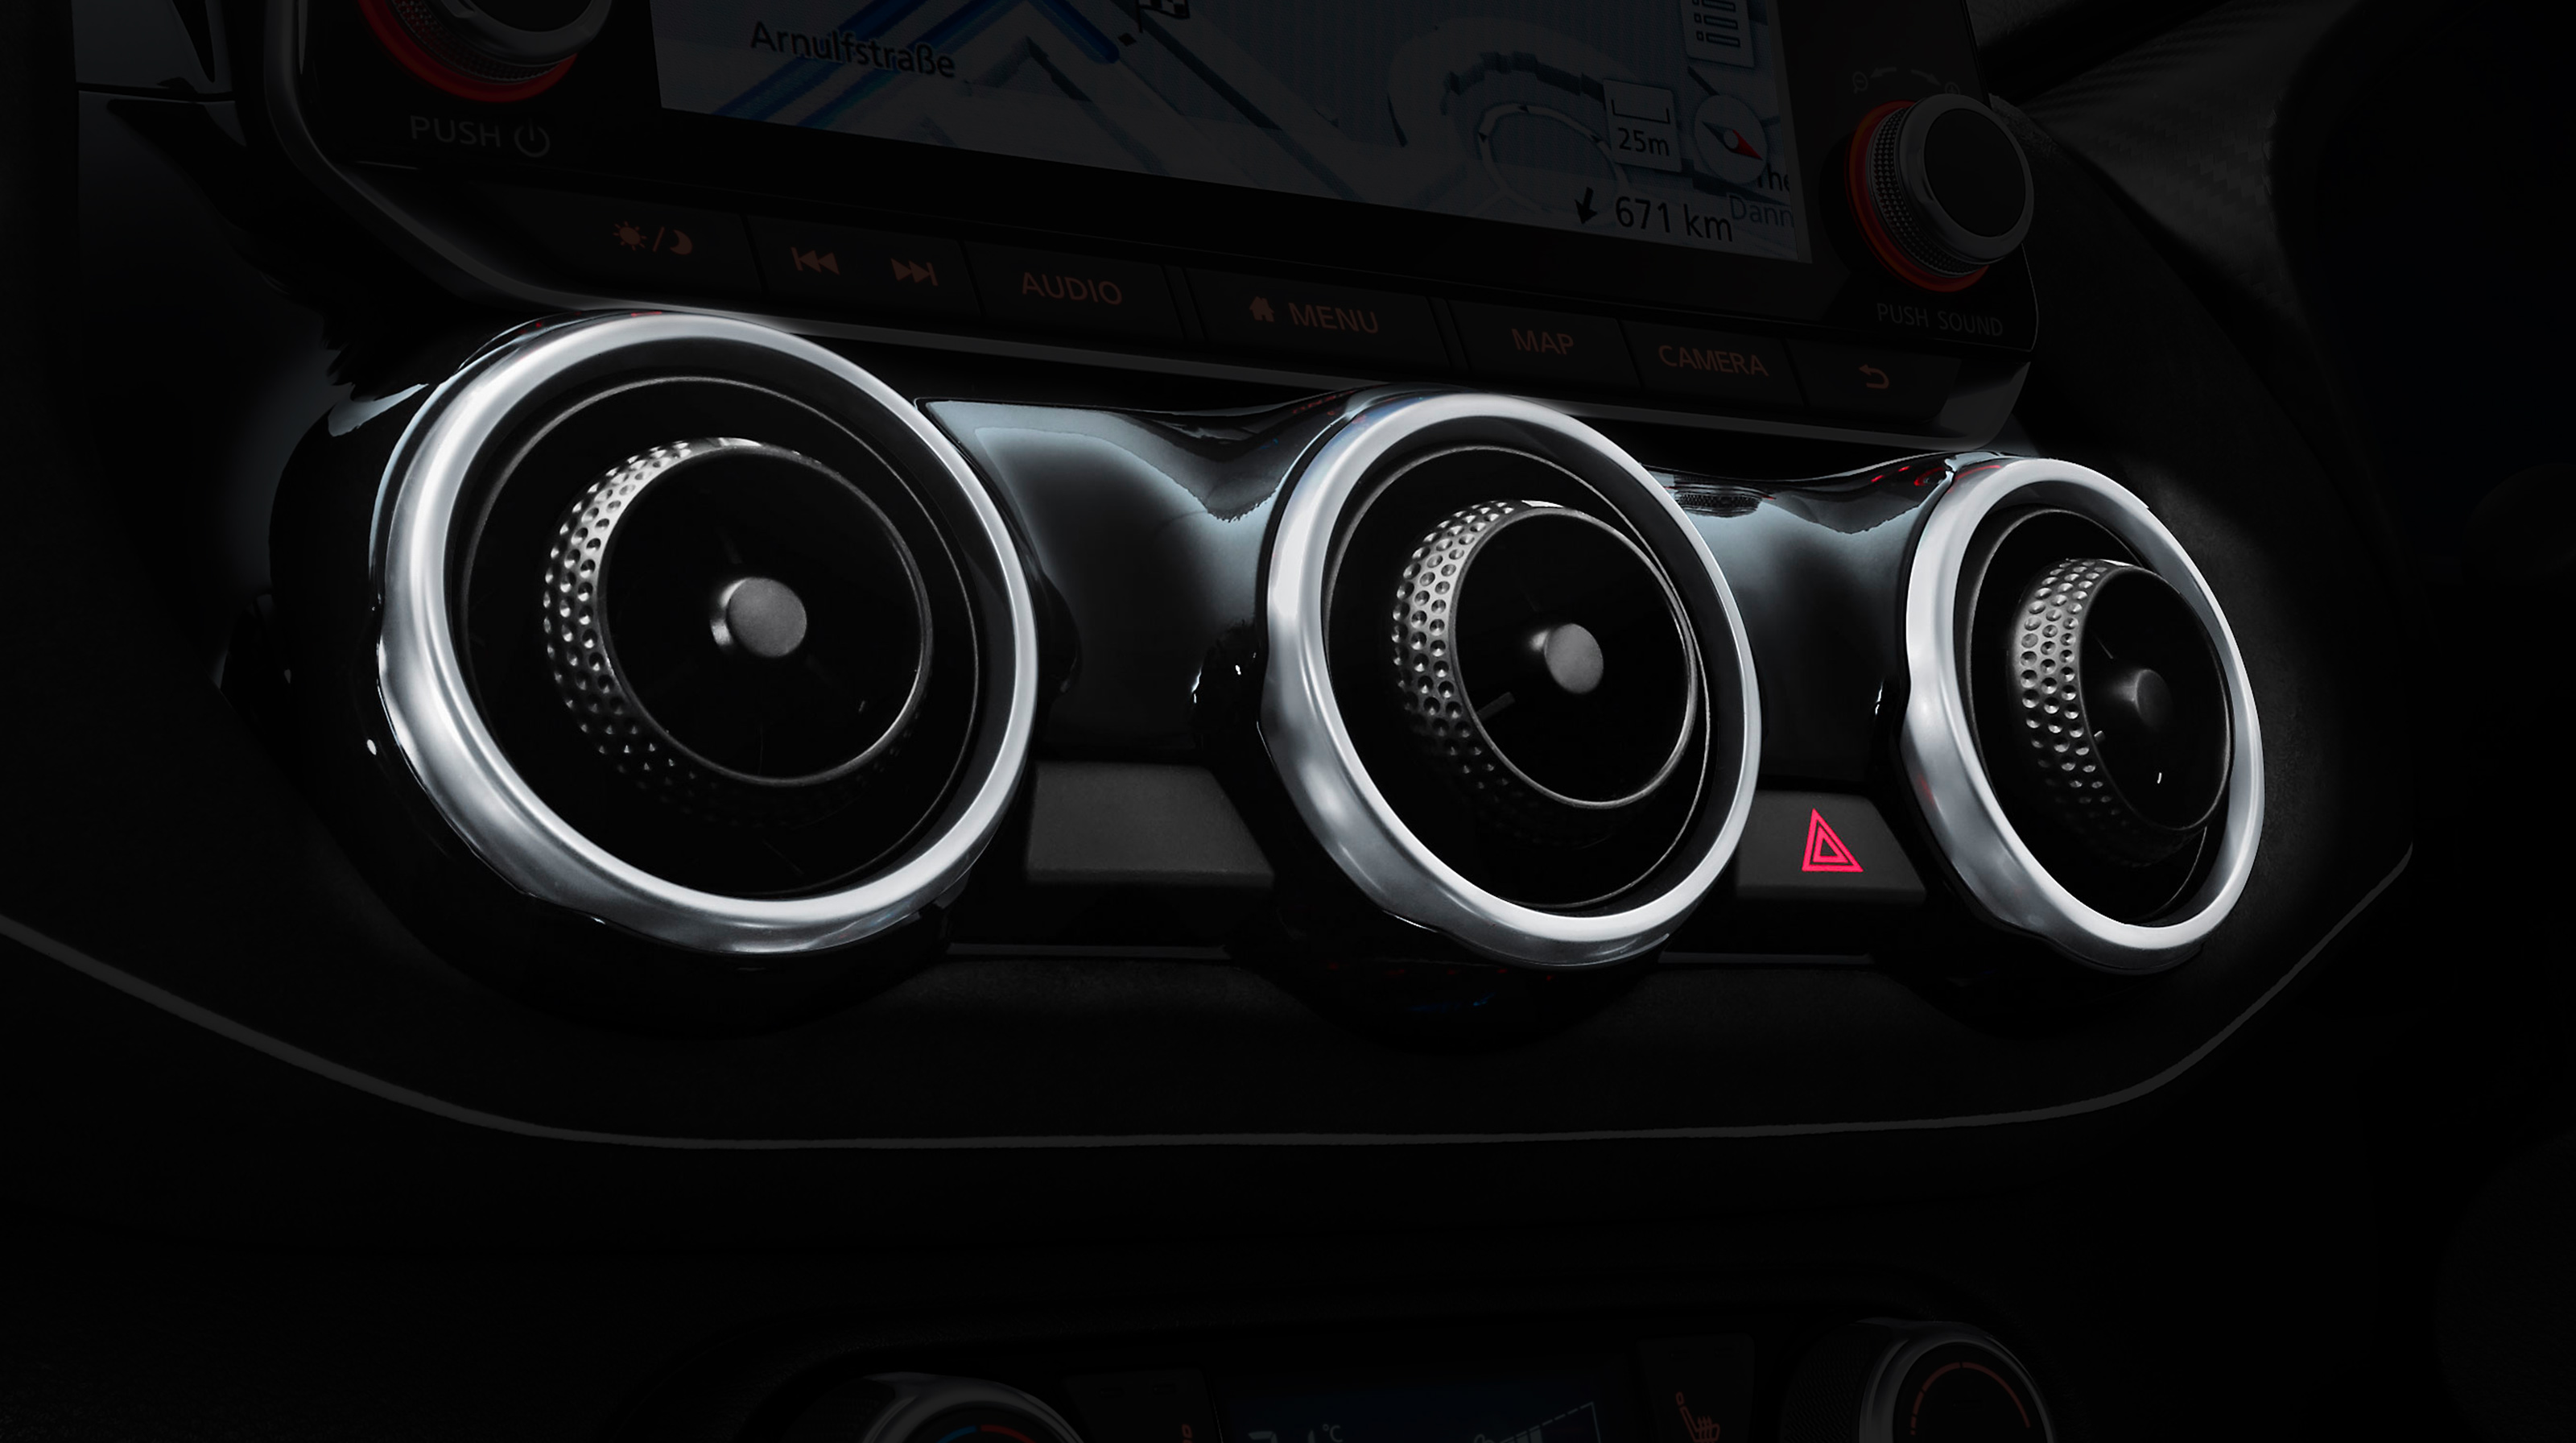 Nissan JUKE stylish air vent